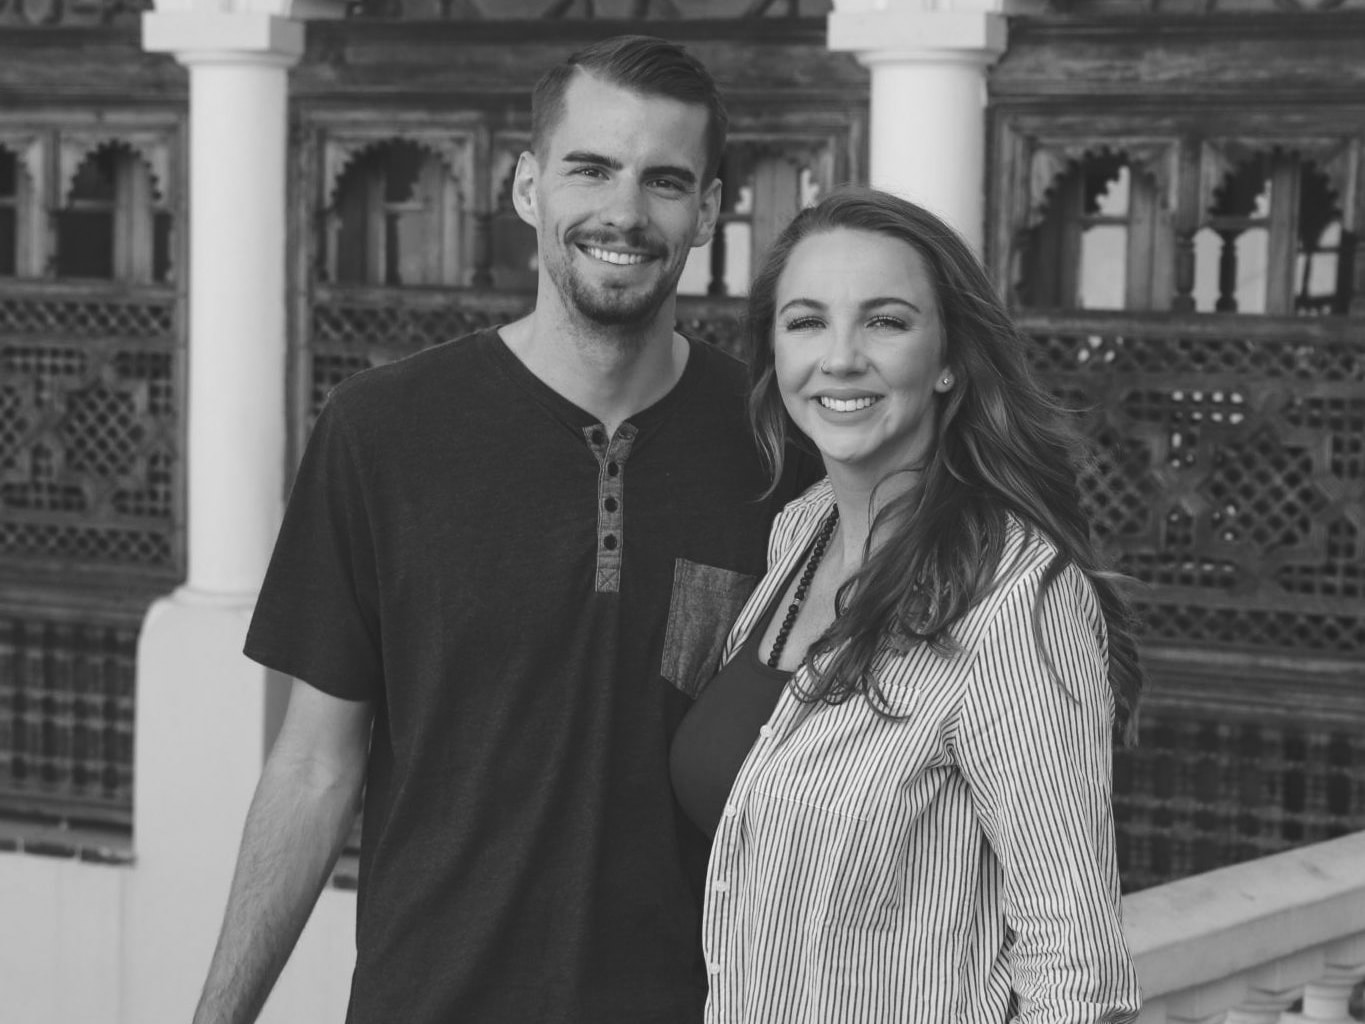 Jacquie and Dylan of Lanky Adventure   Ethical Influencers